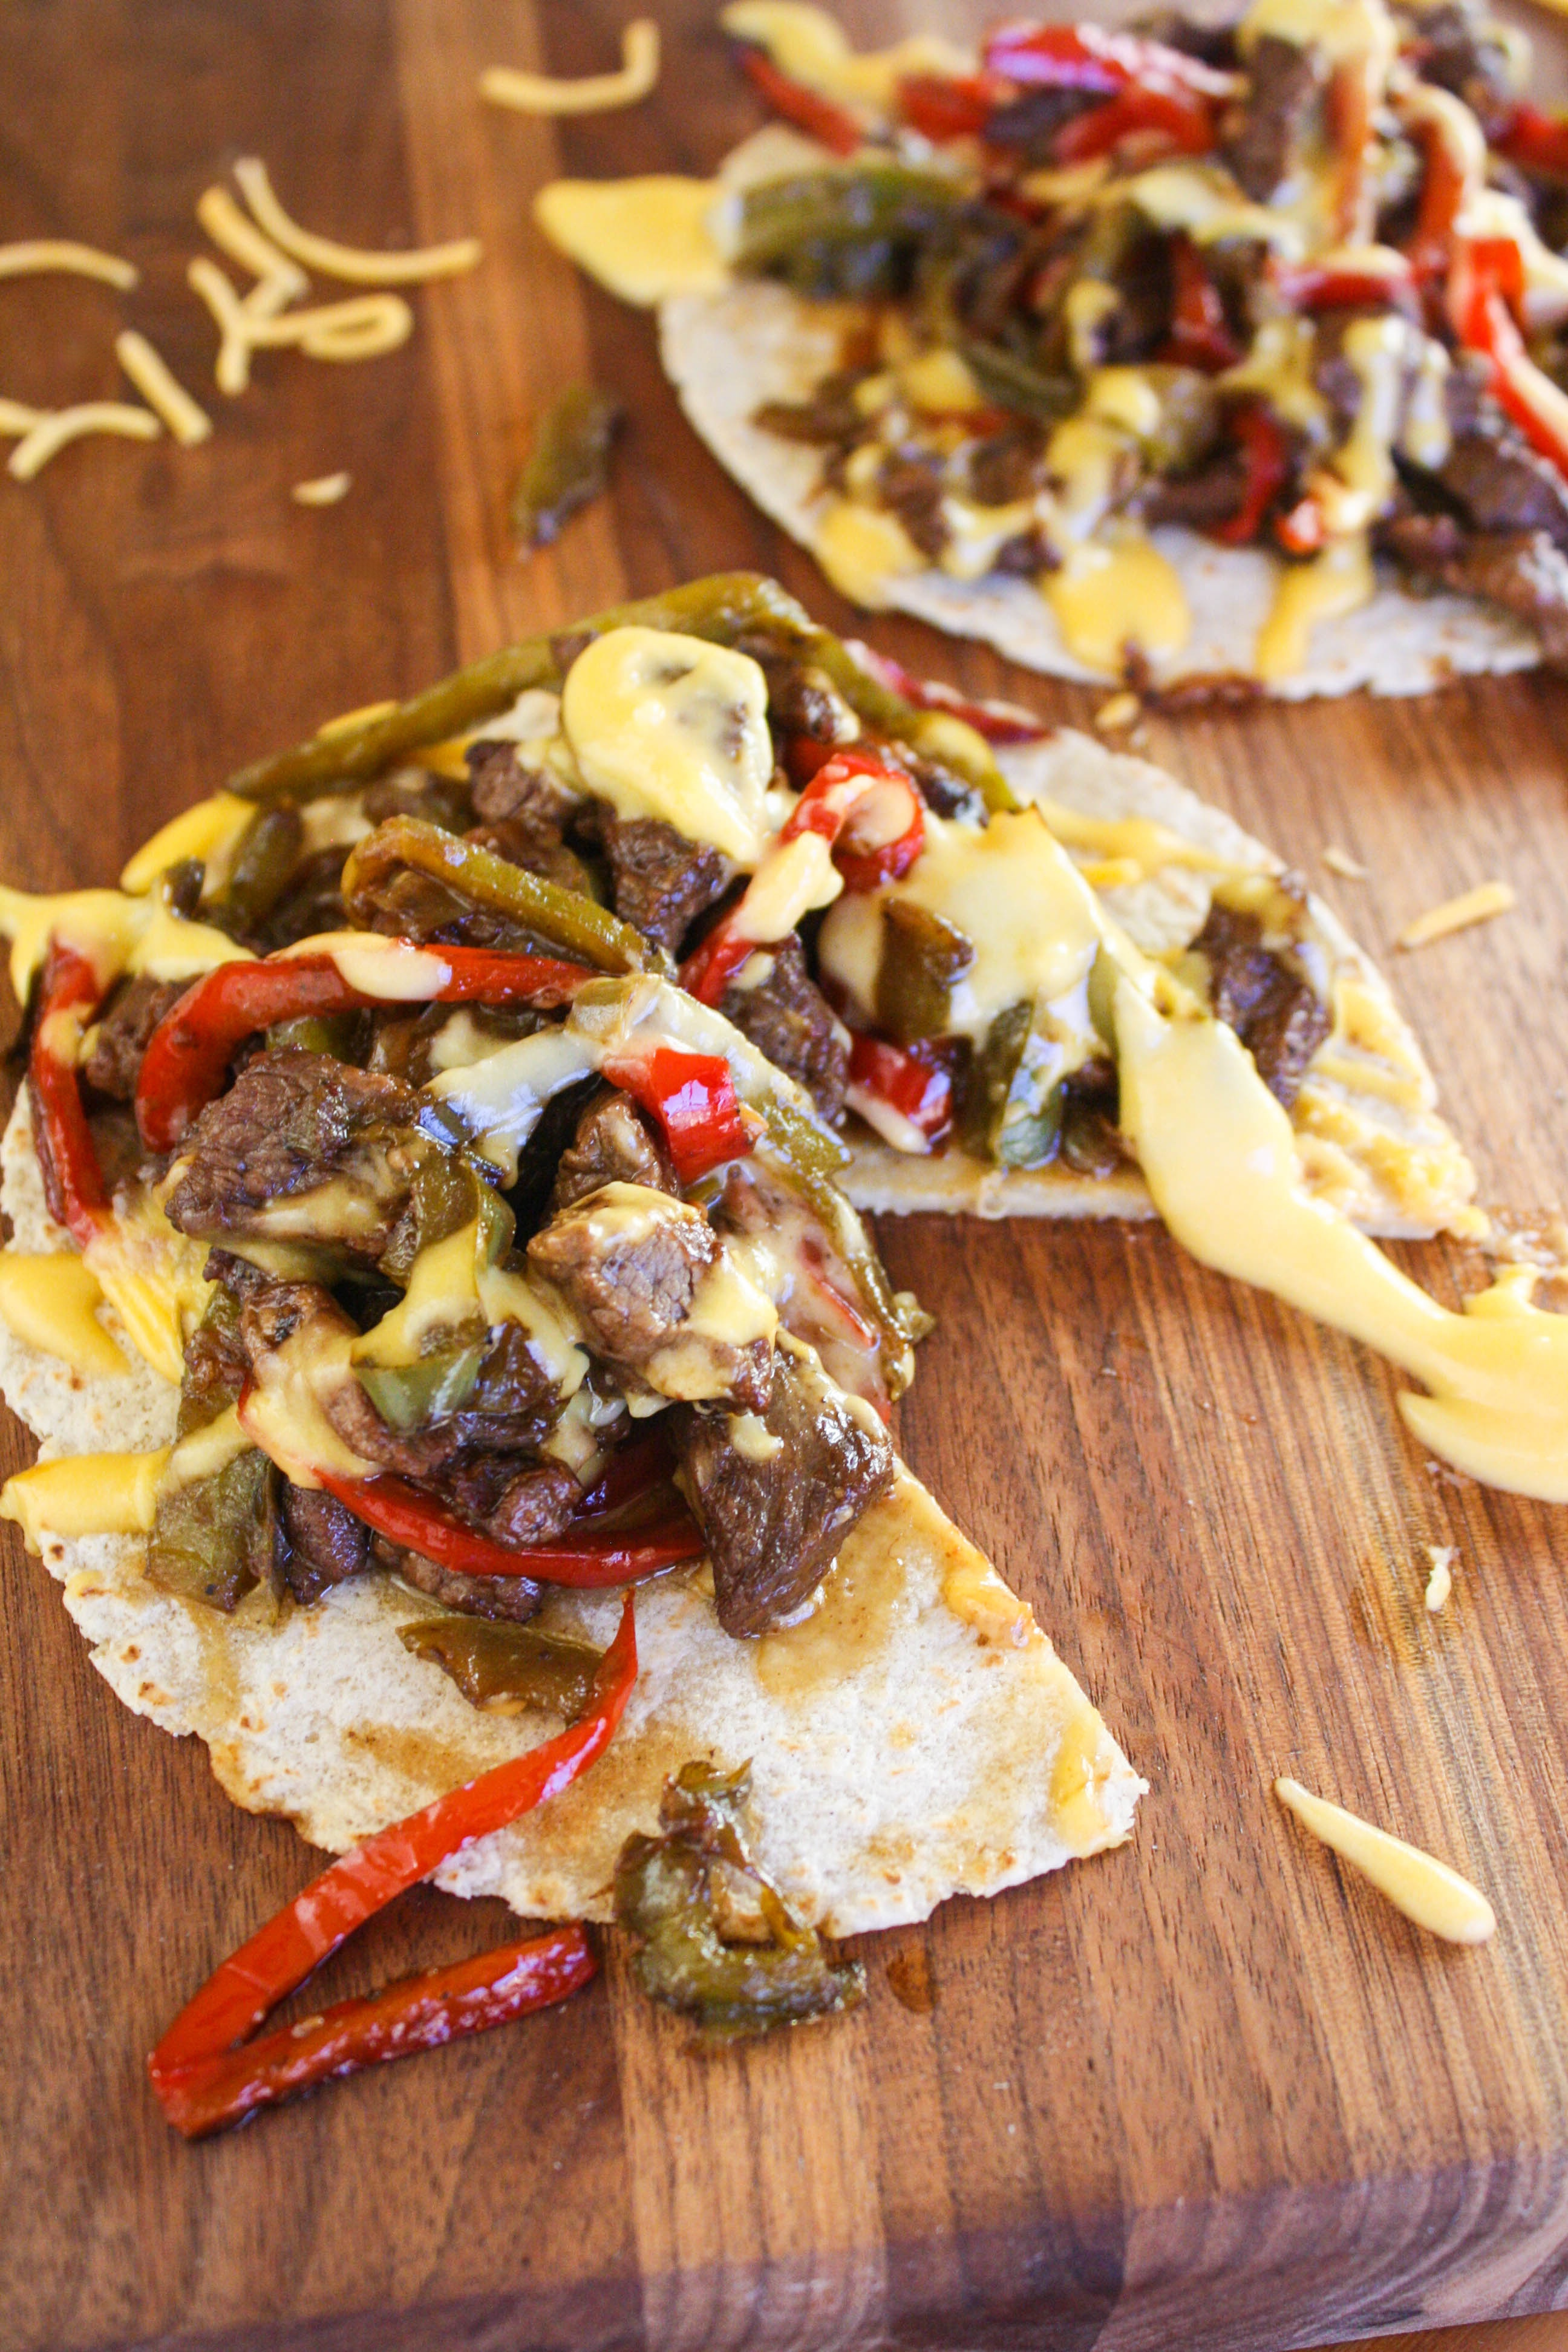 Philly Cheesesteak Tostadas make a tasty meal. You'll love these Philly Cheesesteak Tostadas for lunch or dinner.